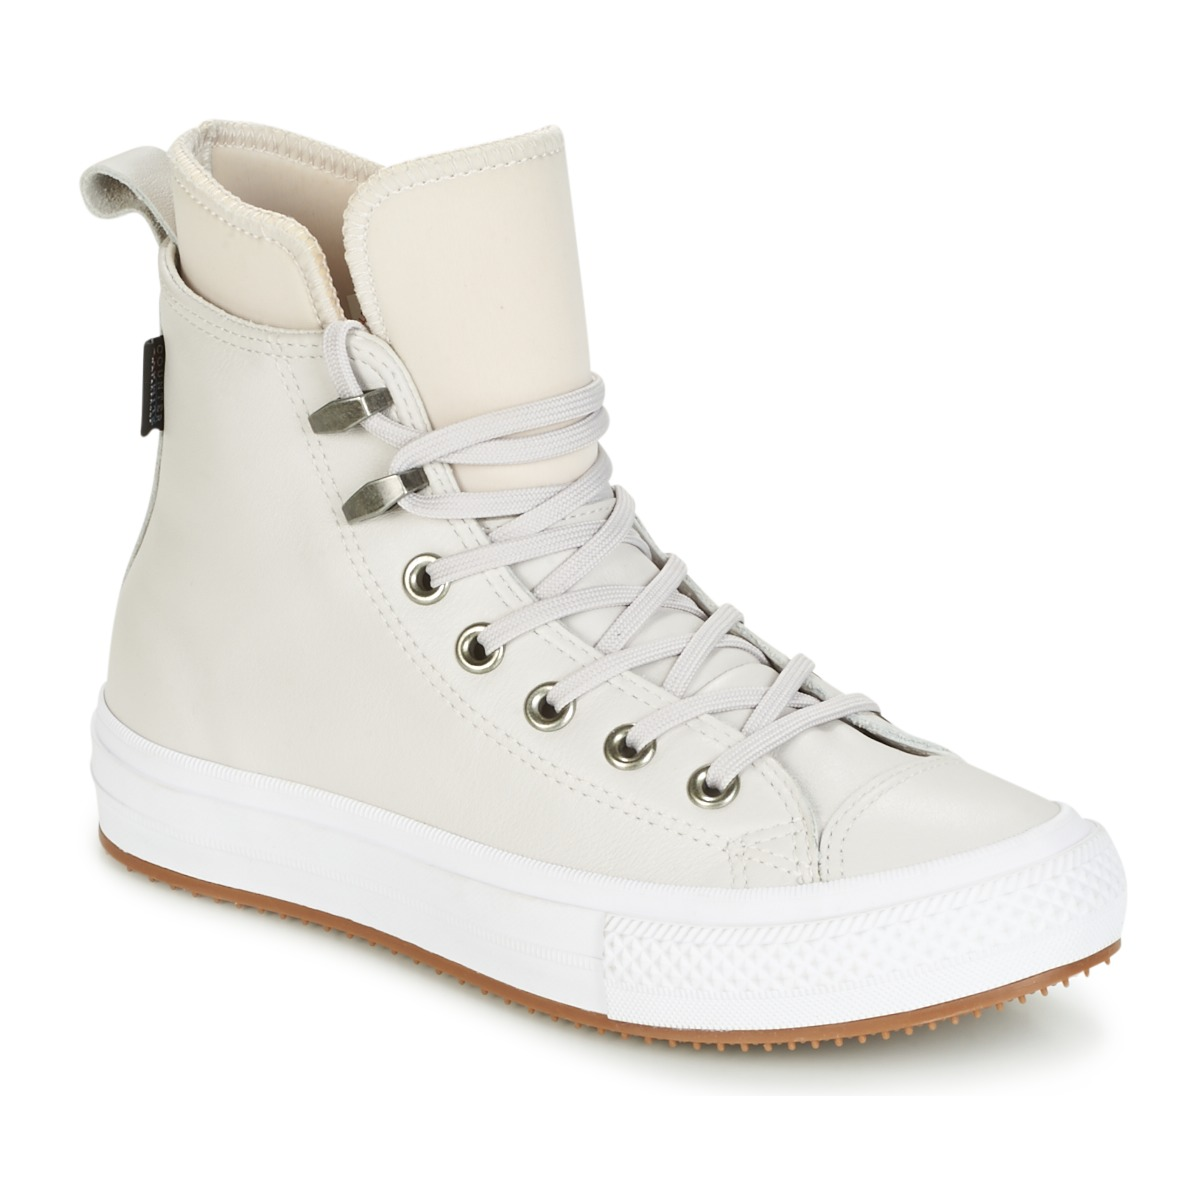 Converse CHUCK TAYLOR WP BOOT WP LEATHER HI PALE PUTTY/PALE PUTTY/WHITE Rose / Blanc